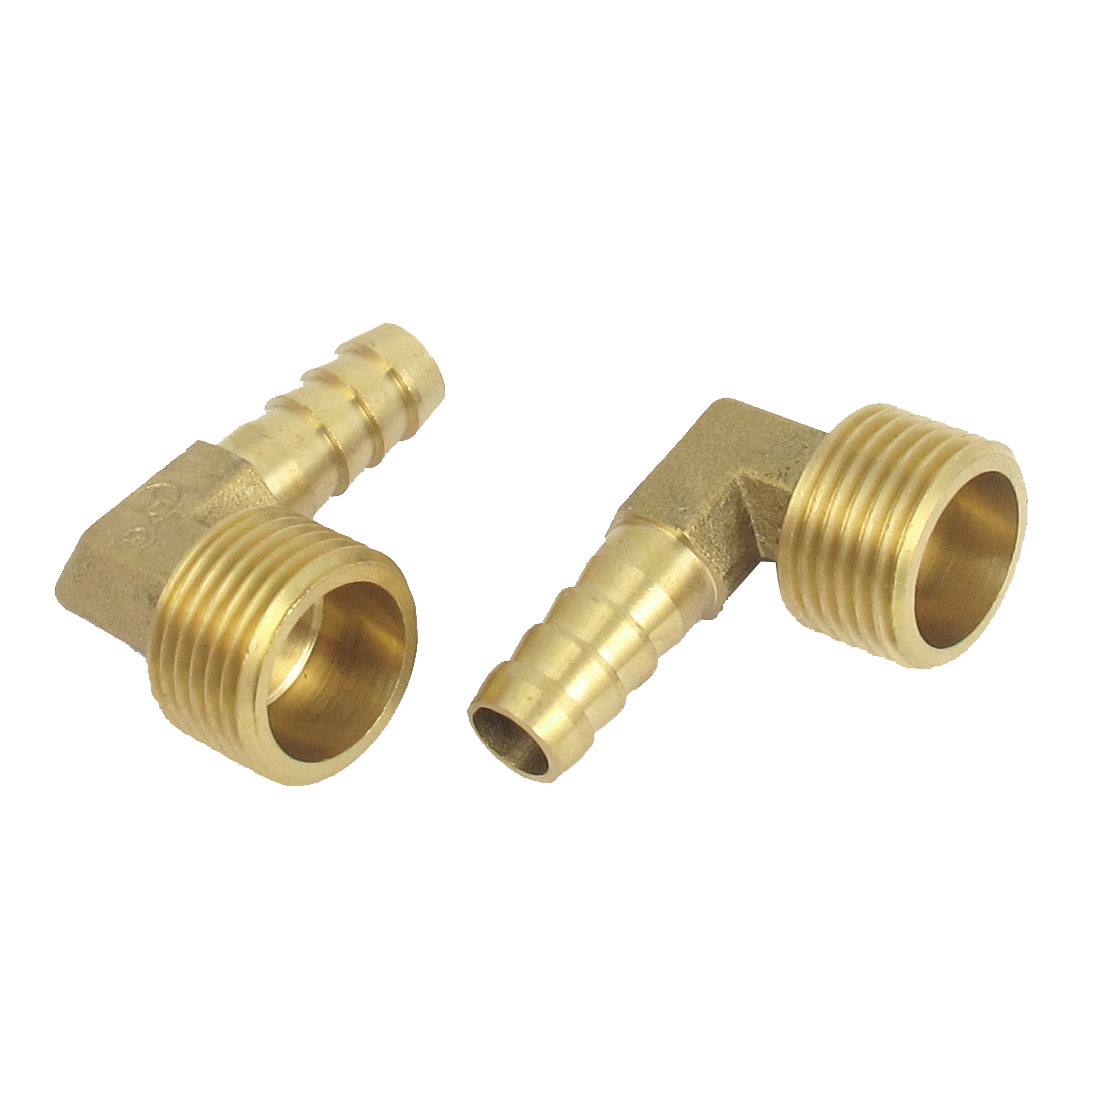 1/2BSP Thread 10mm Tube Dia 90 Degree Brass Hose Barb Coupler Connector 2pcs